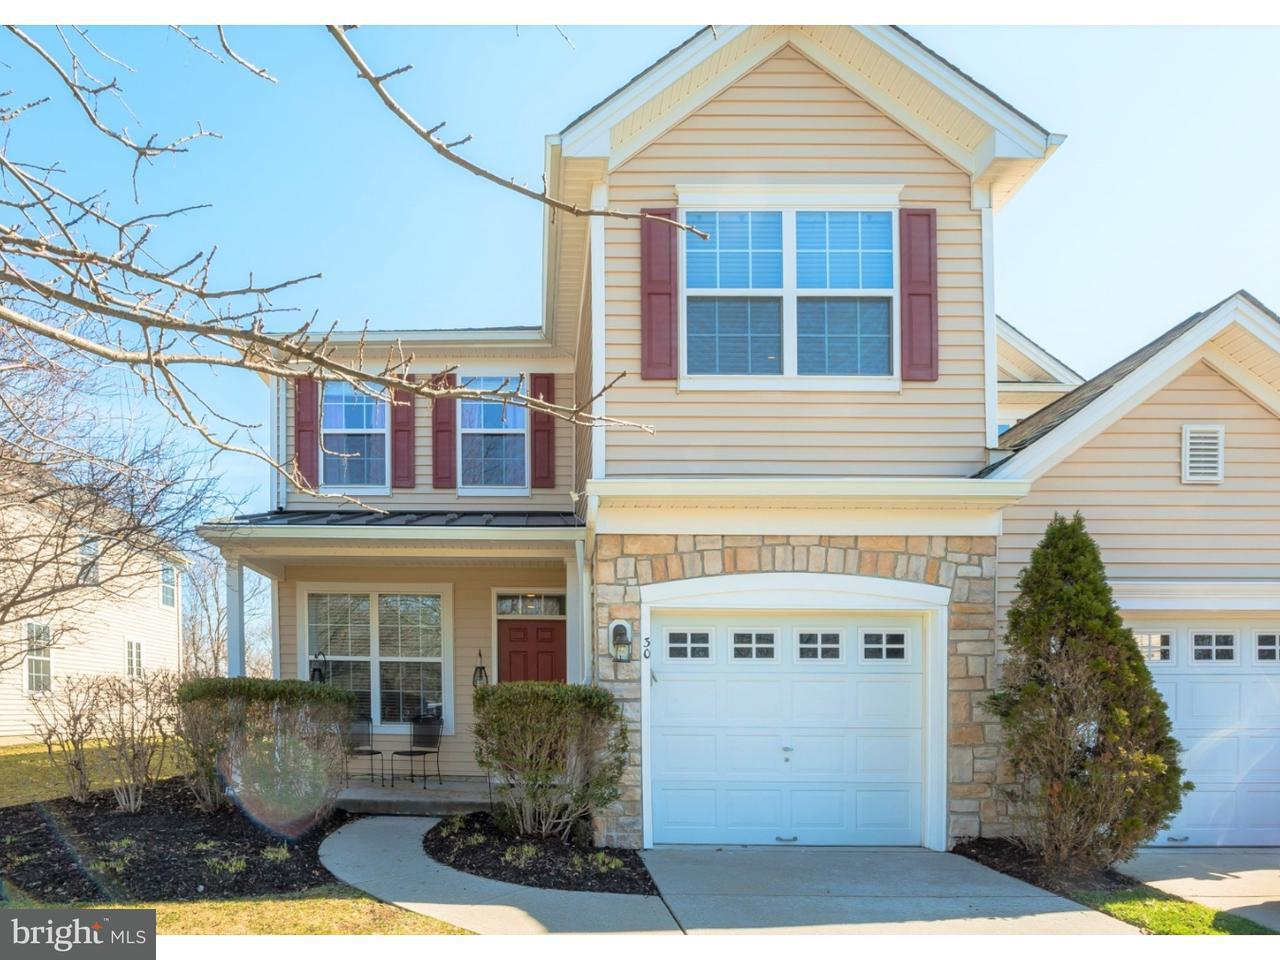 Townhouse for Sale at 30 CROWS NEST Court Mount Laurel, New Jersey 08054 United States